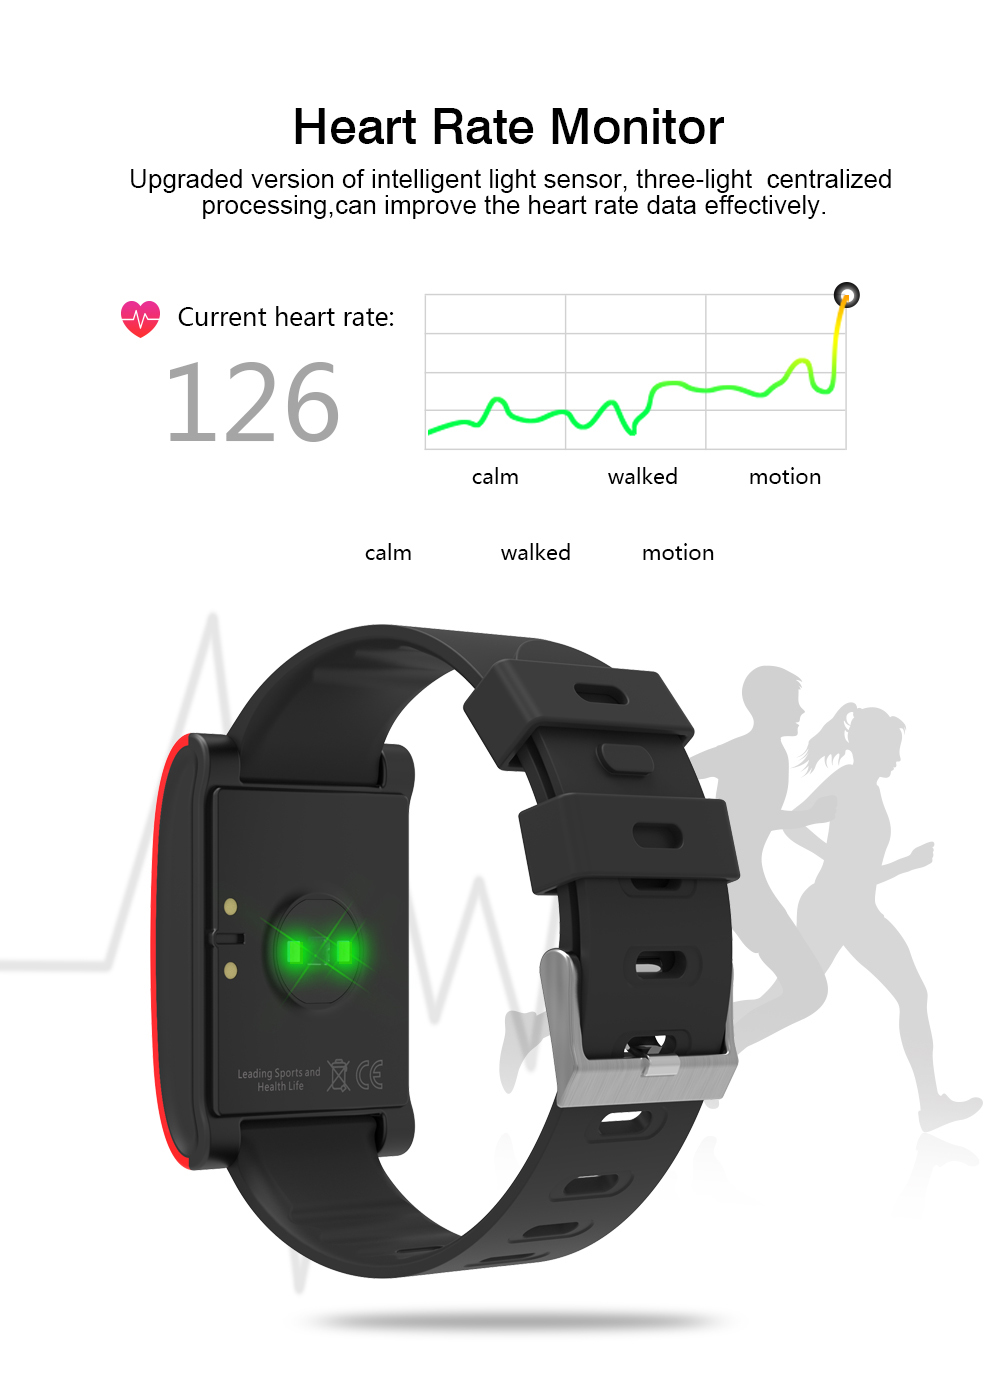 LEMDIOE DM68 waterproof smart band wristband fitness tracker Blood Pressure heart rate monitor Calls Messages watch for phone 8